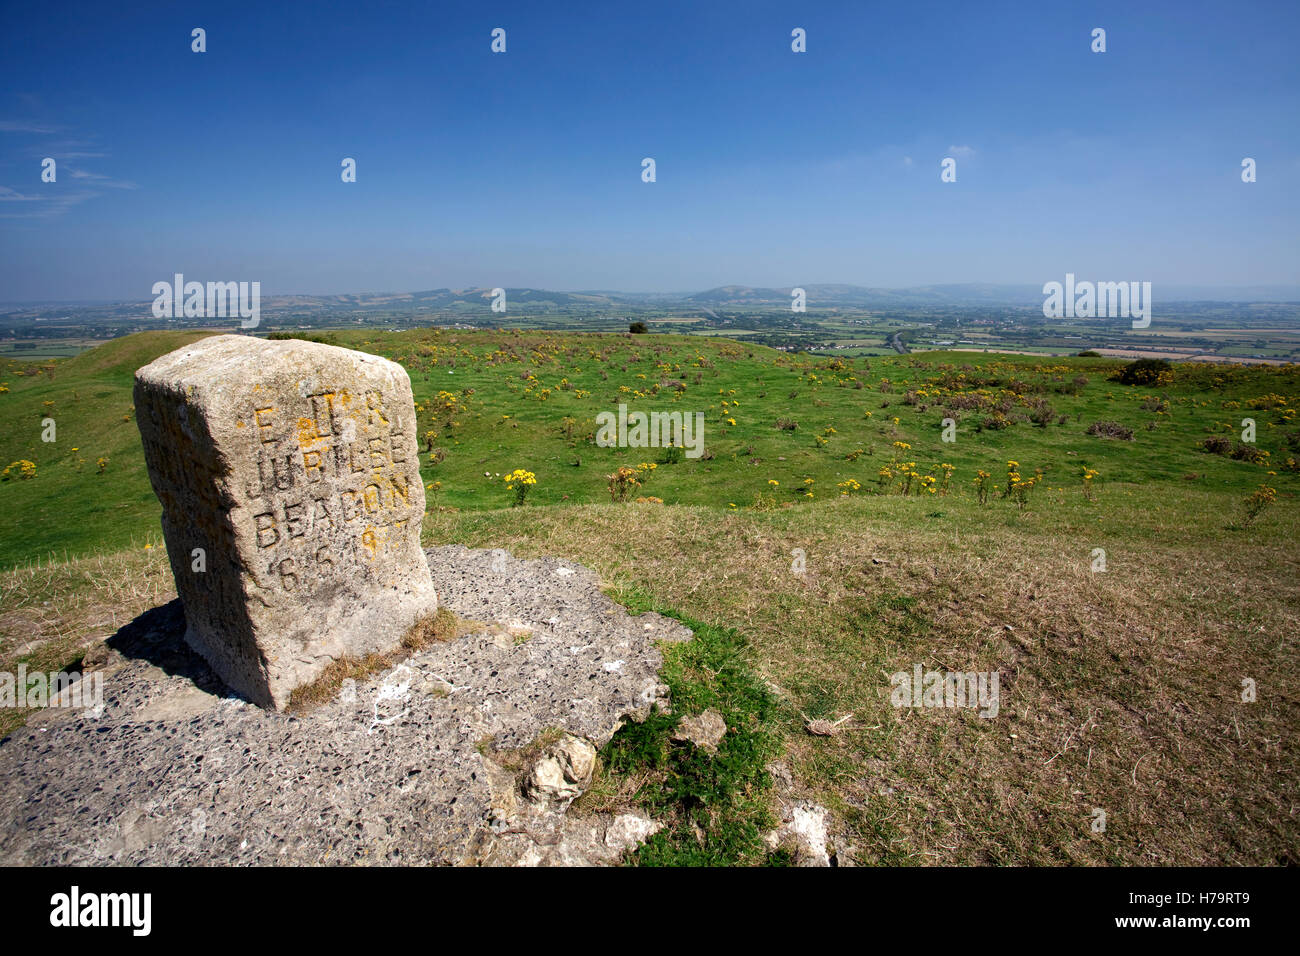 Brent Knoll beacon in Somerset celebrating the Golden and Diamond jubilees of Queen Victoria - Stock Image